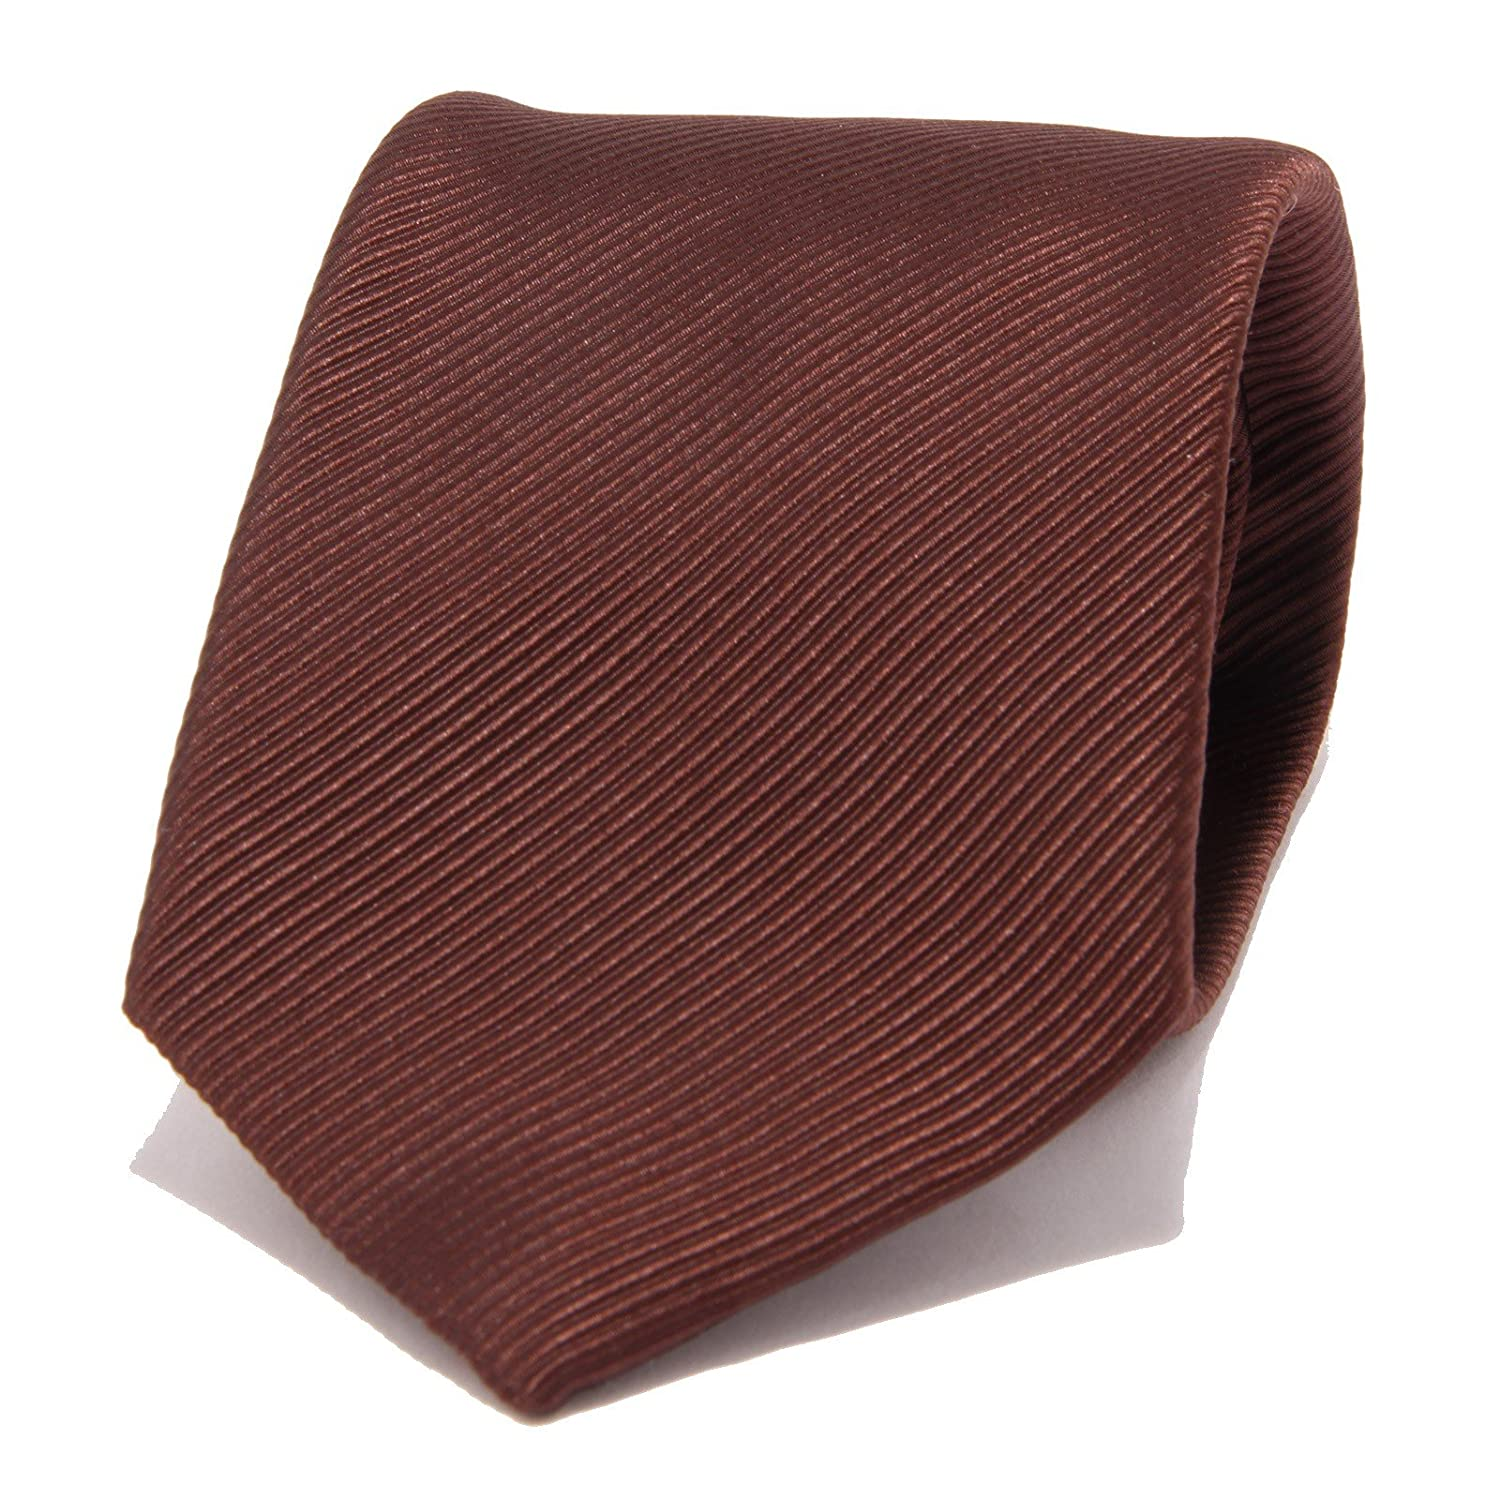 5188S cravatta uomo D BY D seta marrone brown silk tie men